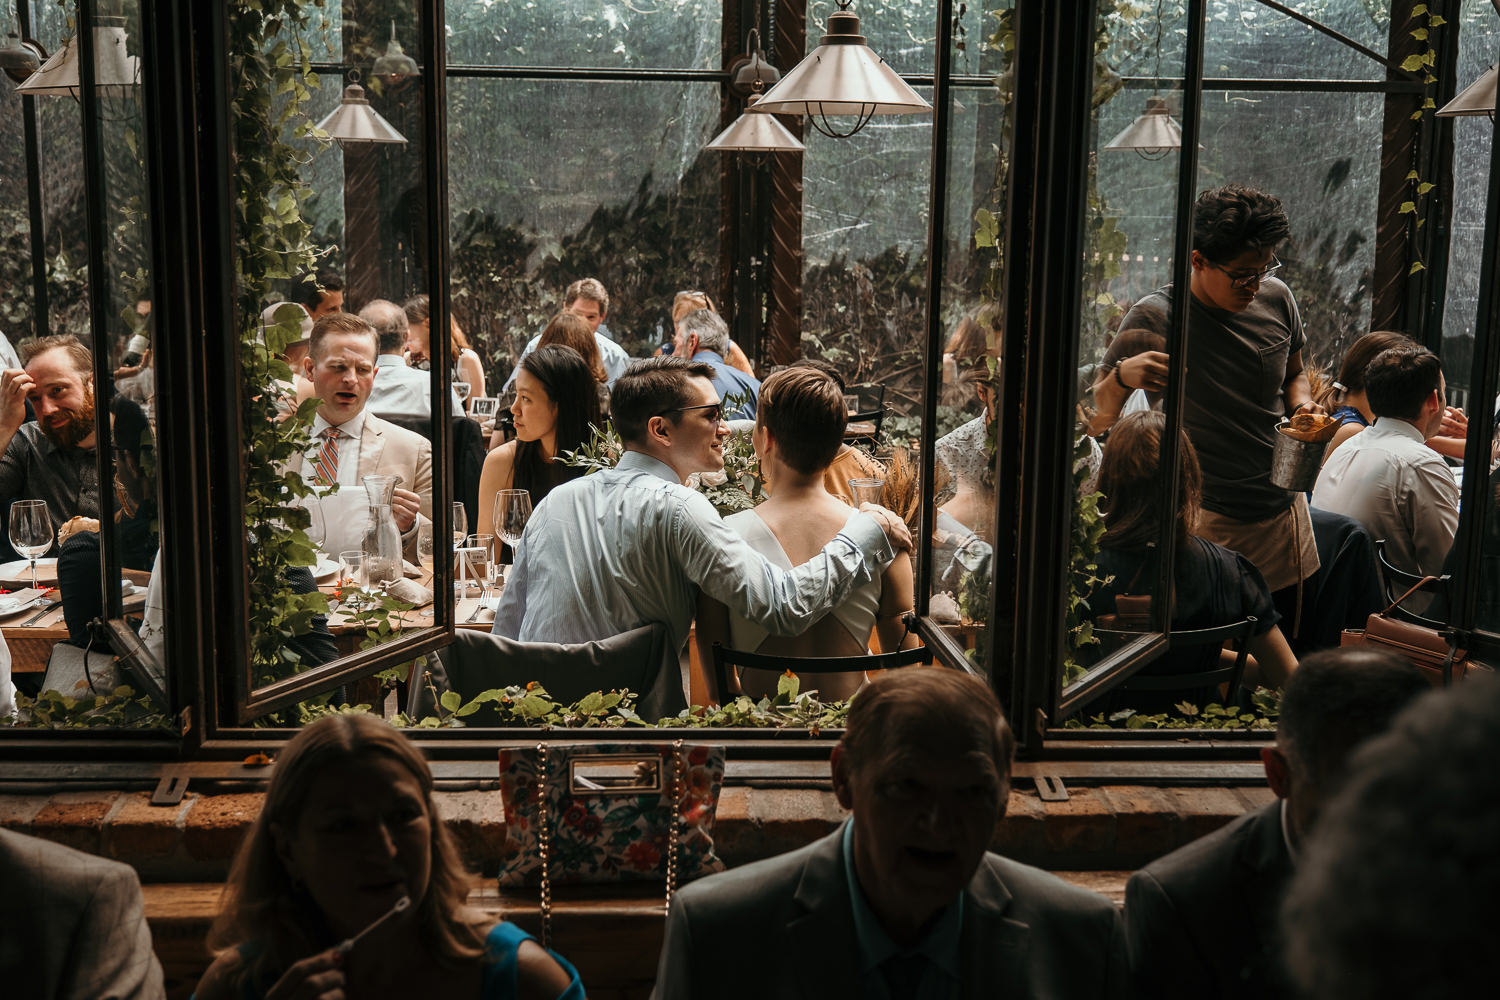 inside looking out thru vine covered windows newlyweds in middle looking at each other